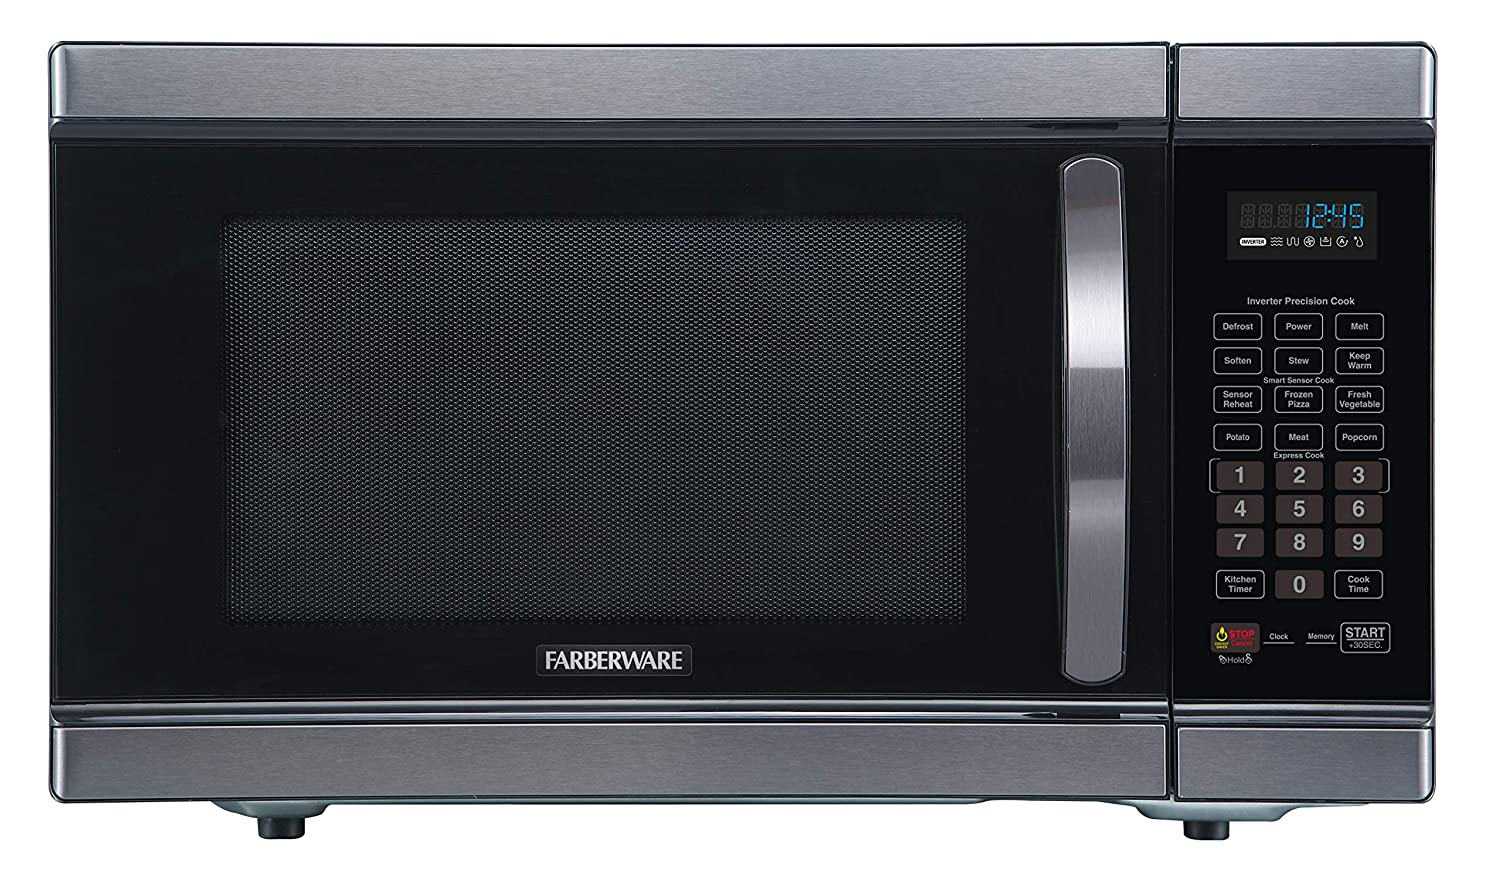 Farberware Black FMO11AHTBSJ 1.1 Cu. Ft 1100-Watt Microwave Oven with Smart Sensor Cooking, Inverter Technology, ECO Mode and LED Lighting, Black Stainless Steel